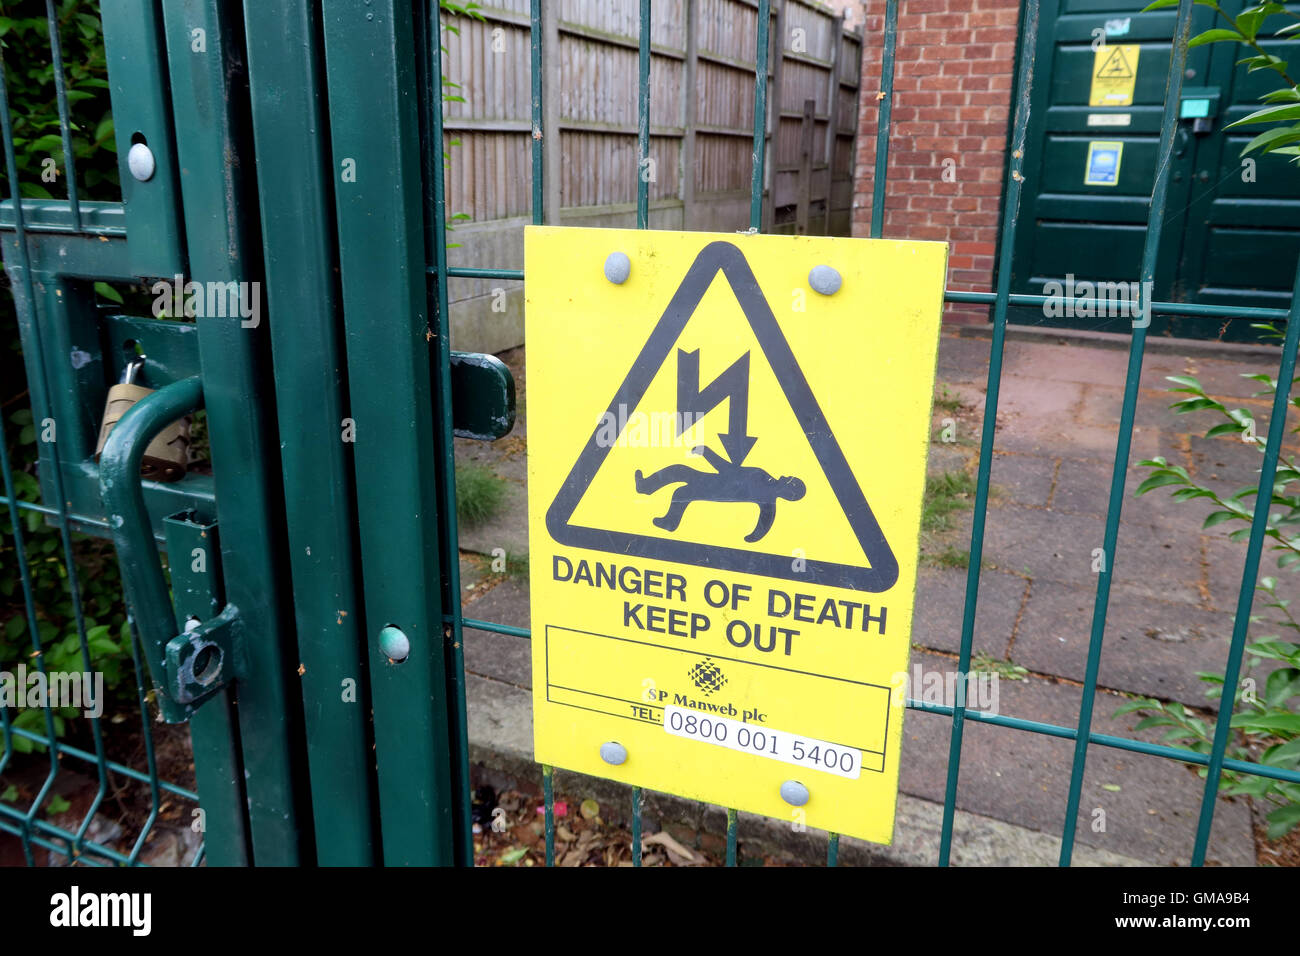 Substation - Danger Of Death, Keep Out Notice, Norweb Warrington, Cheshire, UK - Stock Image